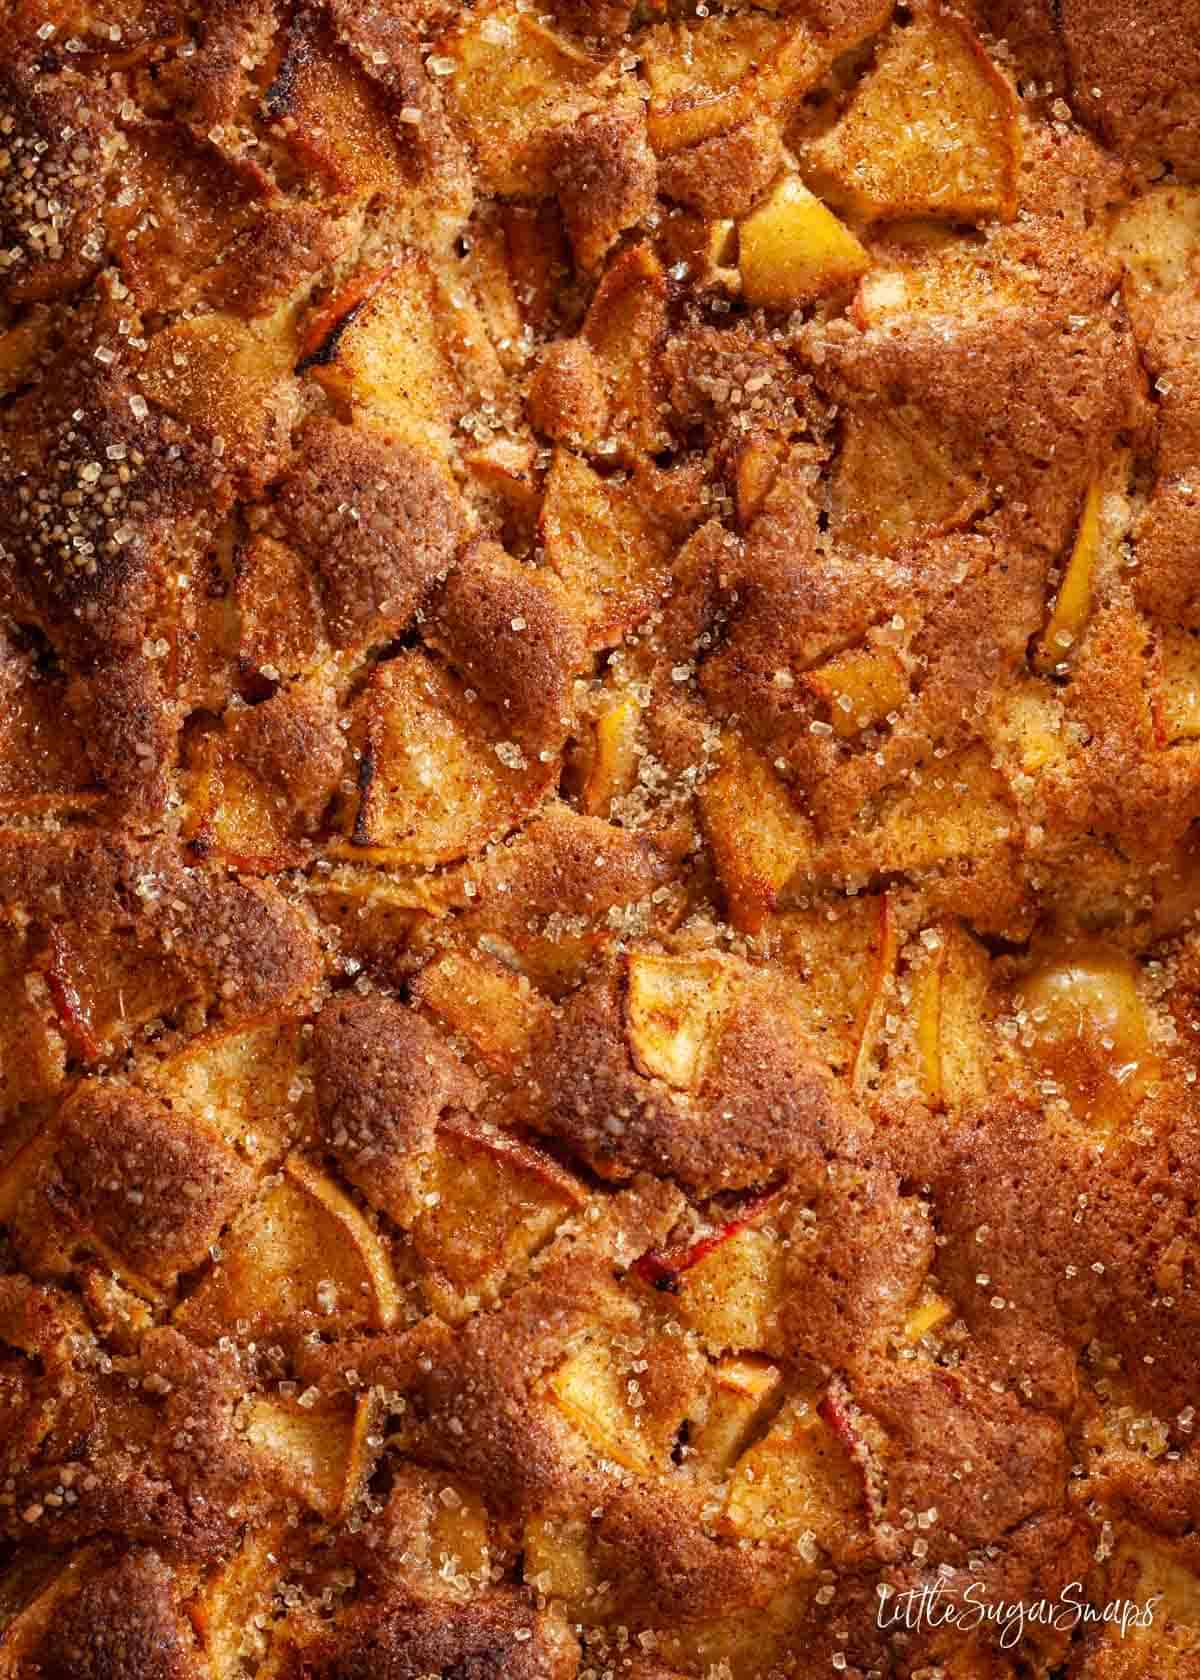 Close up of the top of an apple cake once baked